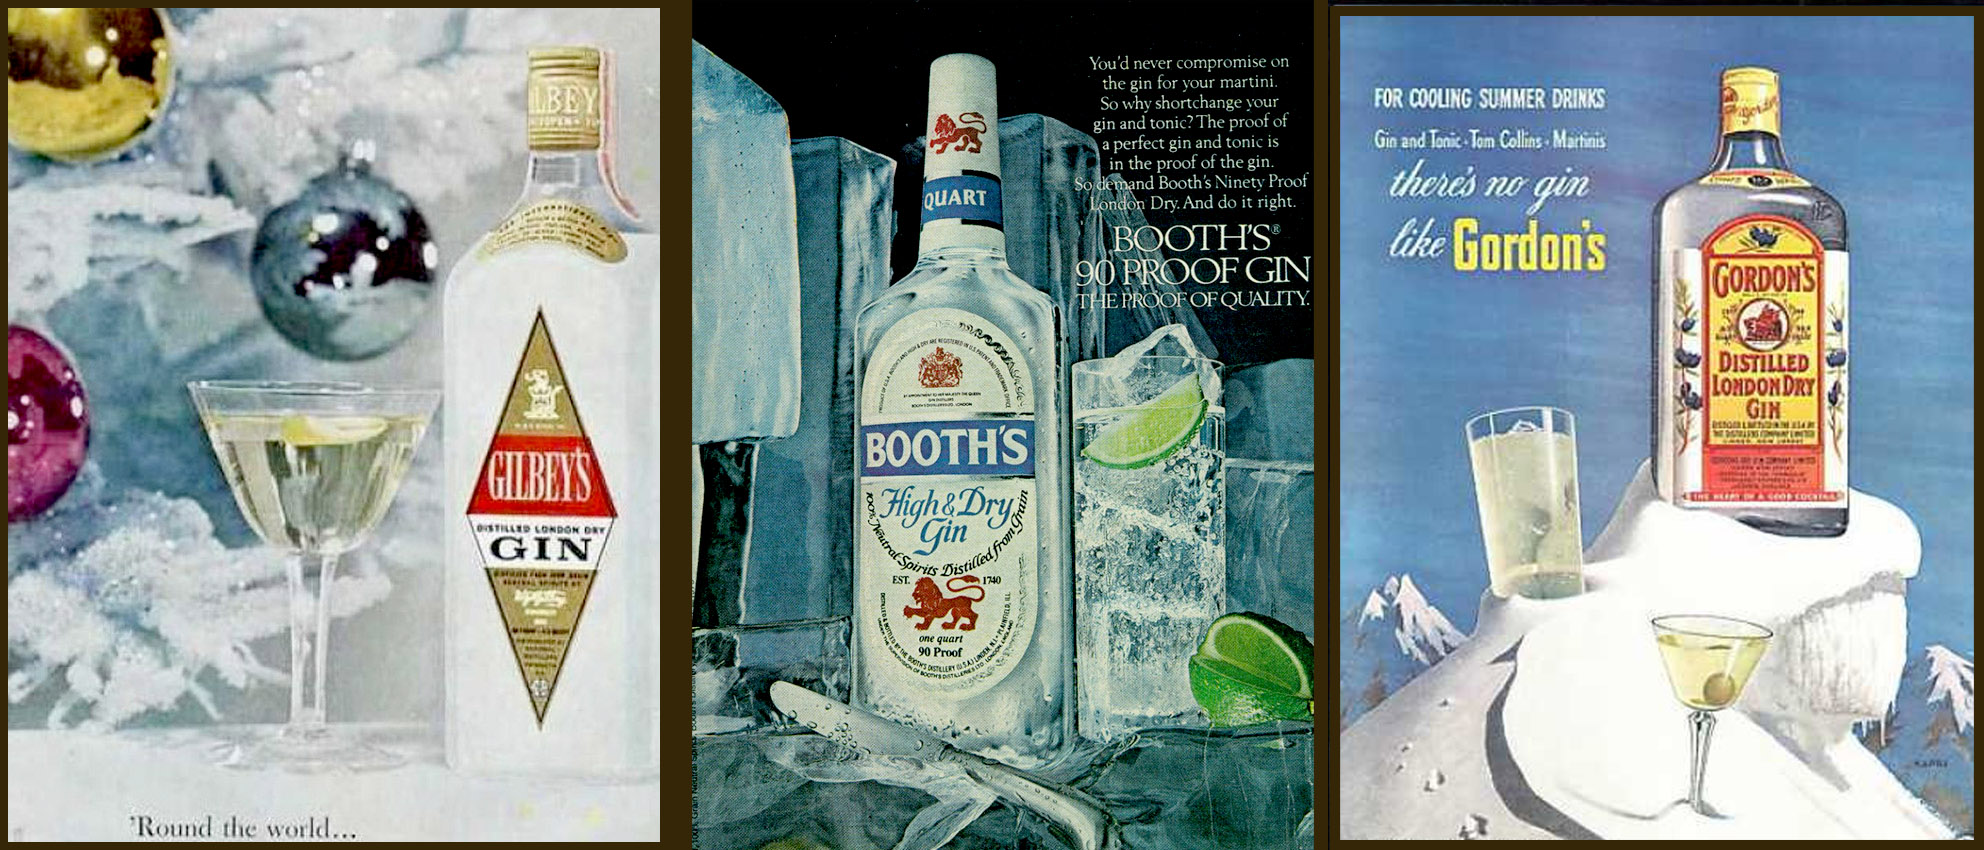 Vintage spirit cocktails, exclusive to The London Gin Club